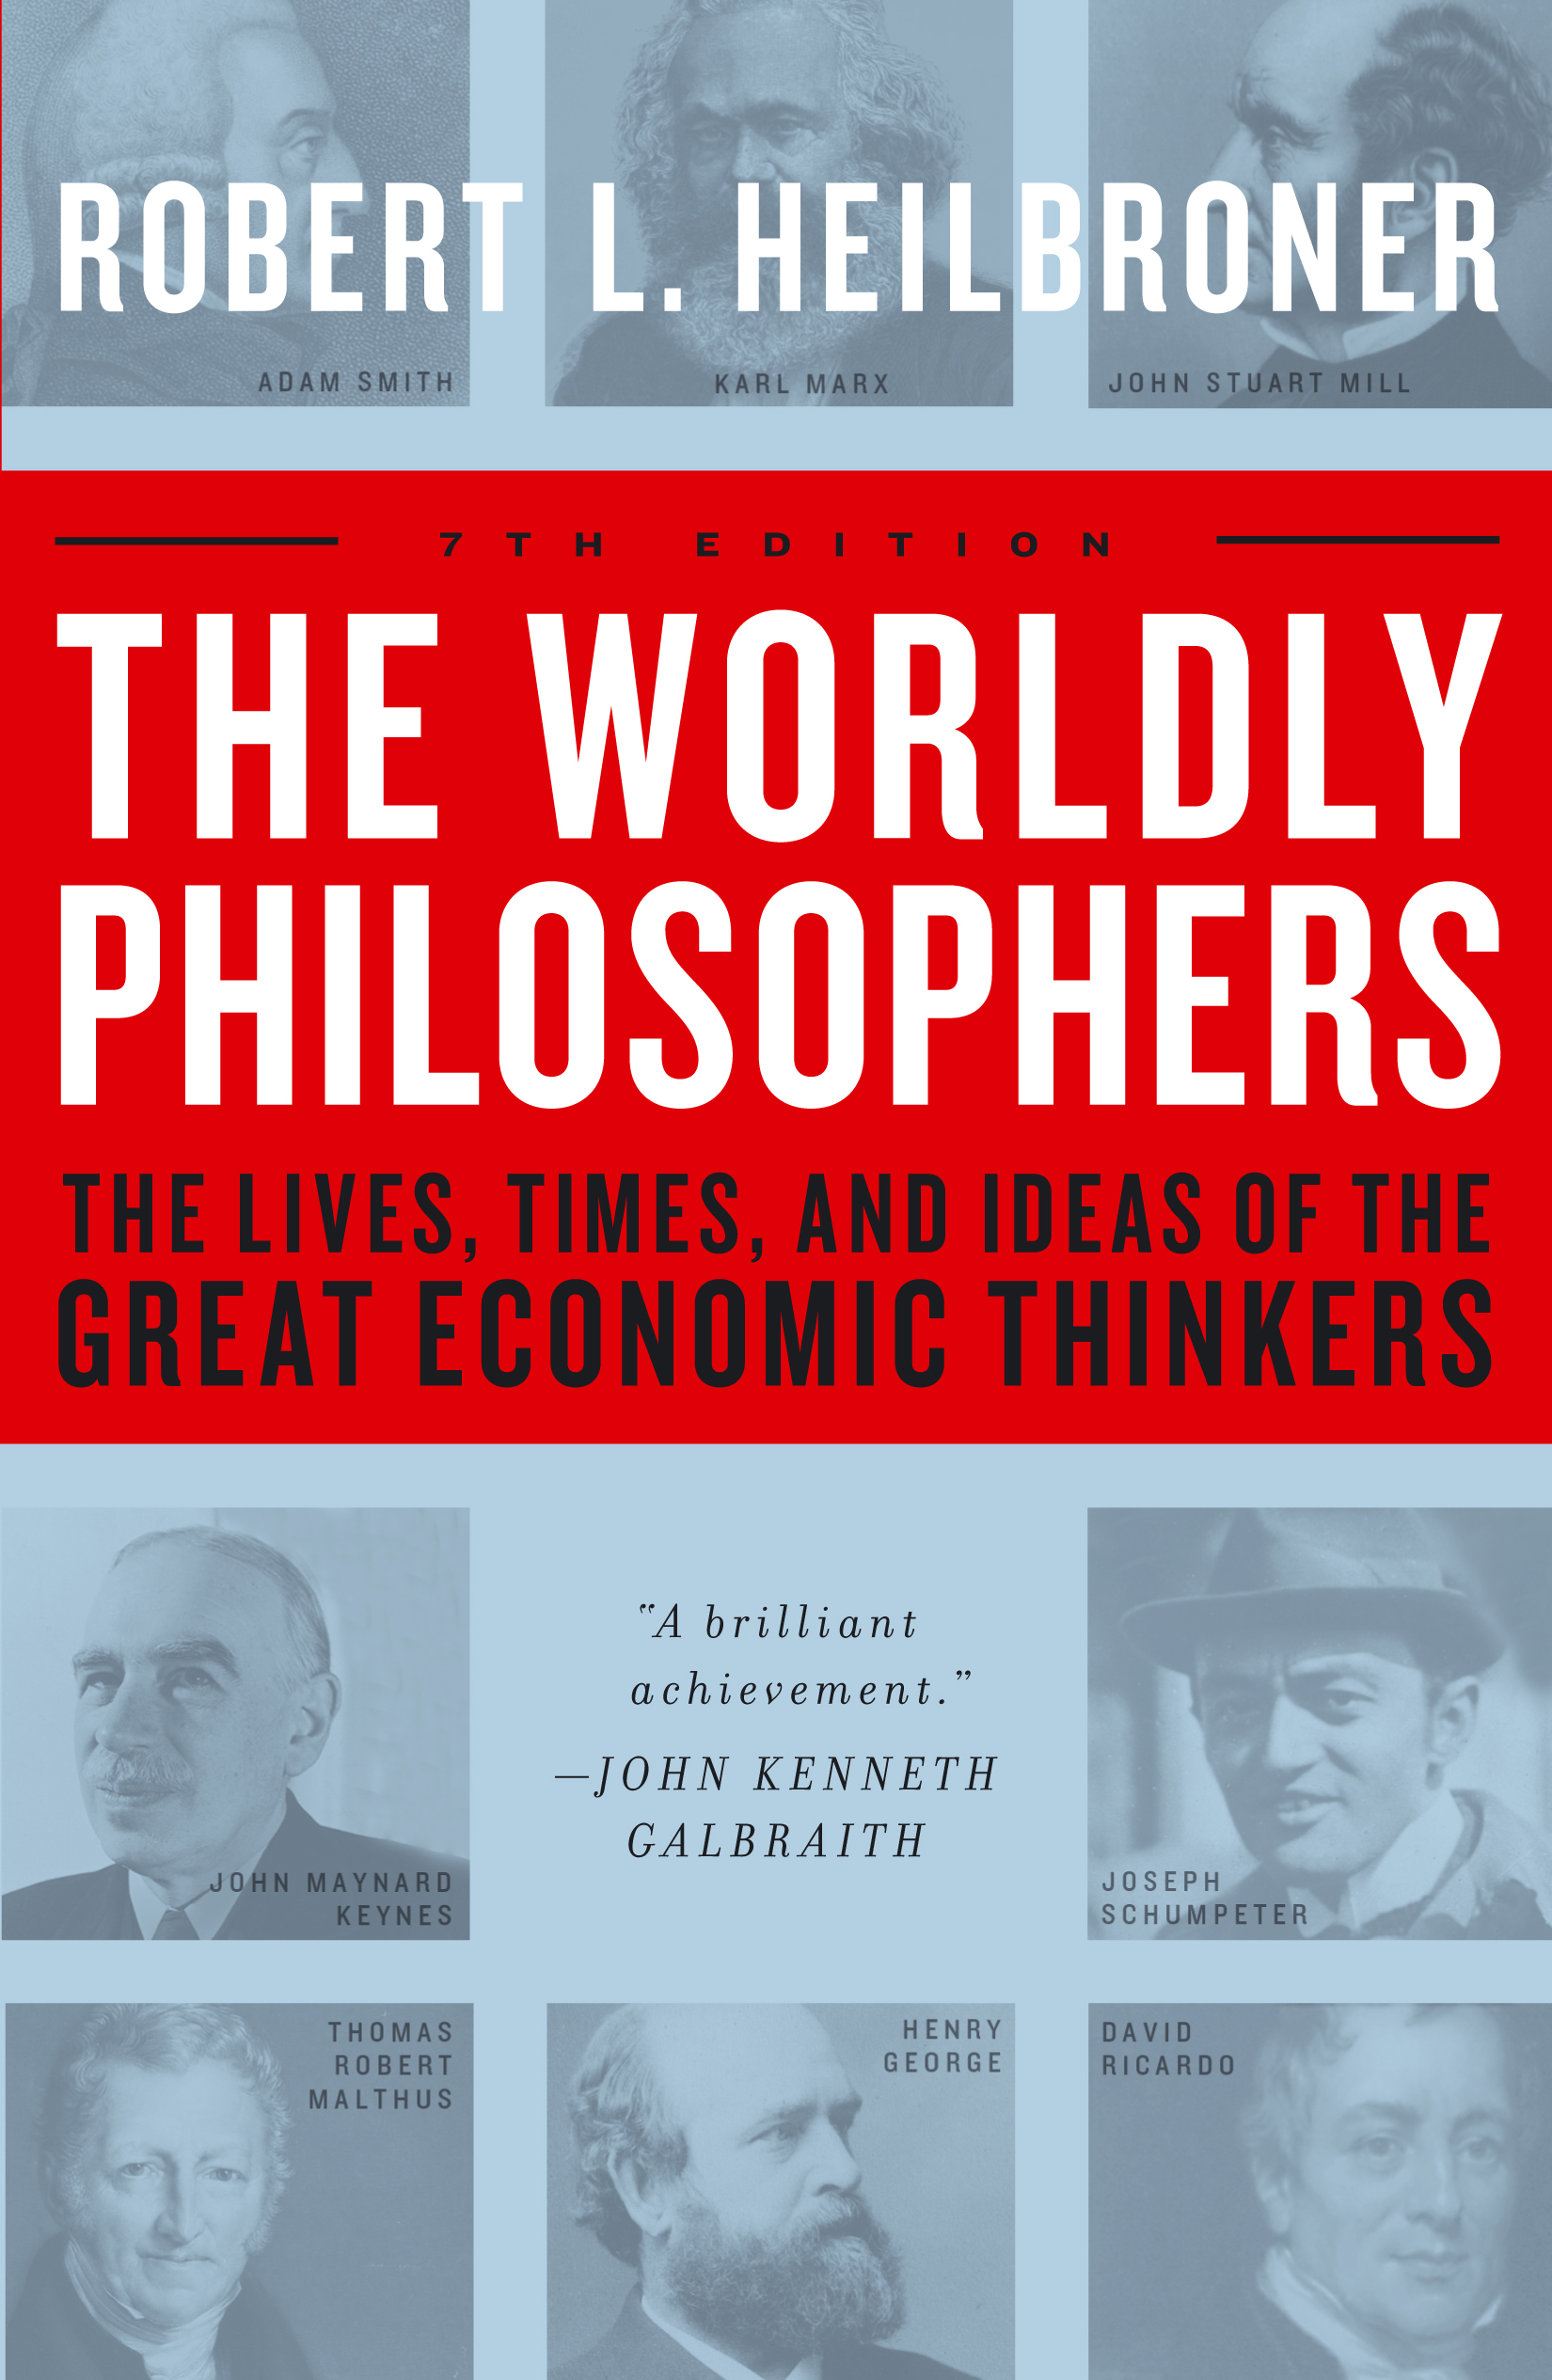 The worldly philosophers book by robert l heilbroner official cvr9780684862149 9780684862149 hr the worldly philosophers fandeluxe Gallery